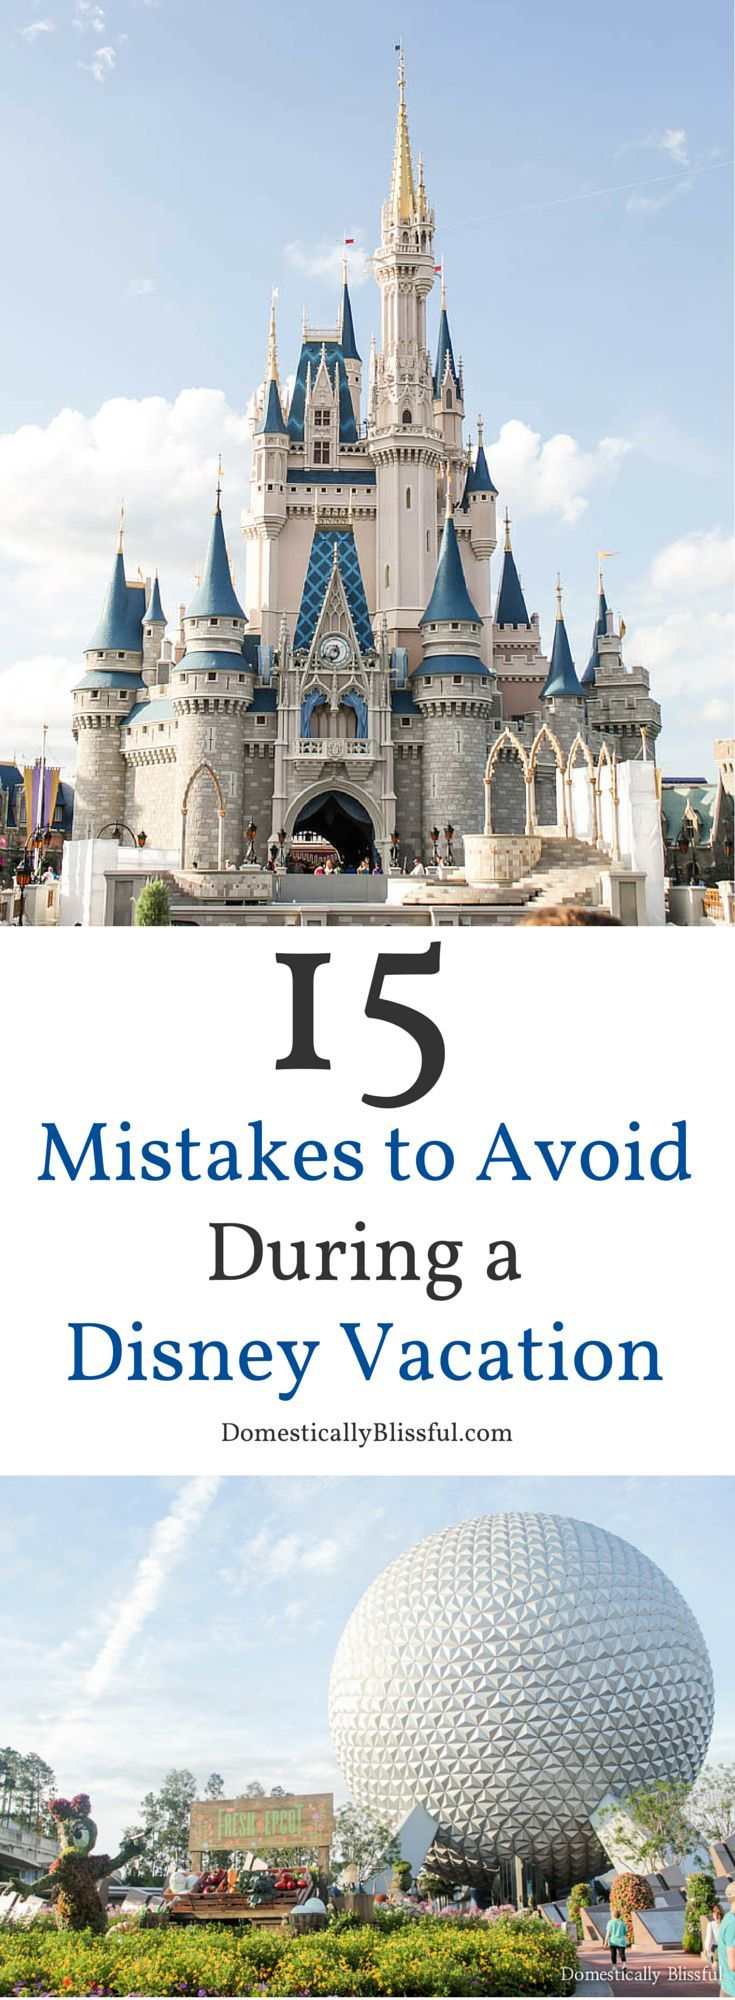 15 Mistakes to Avoid During a Disney Vacation